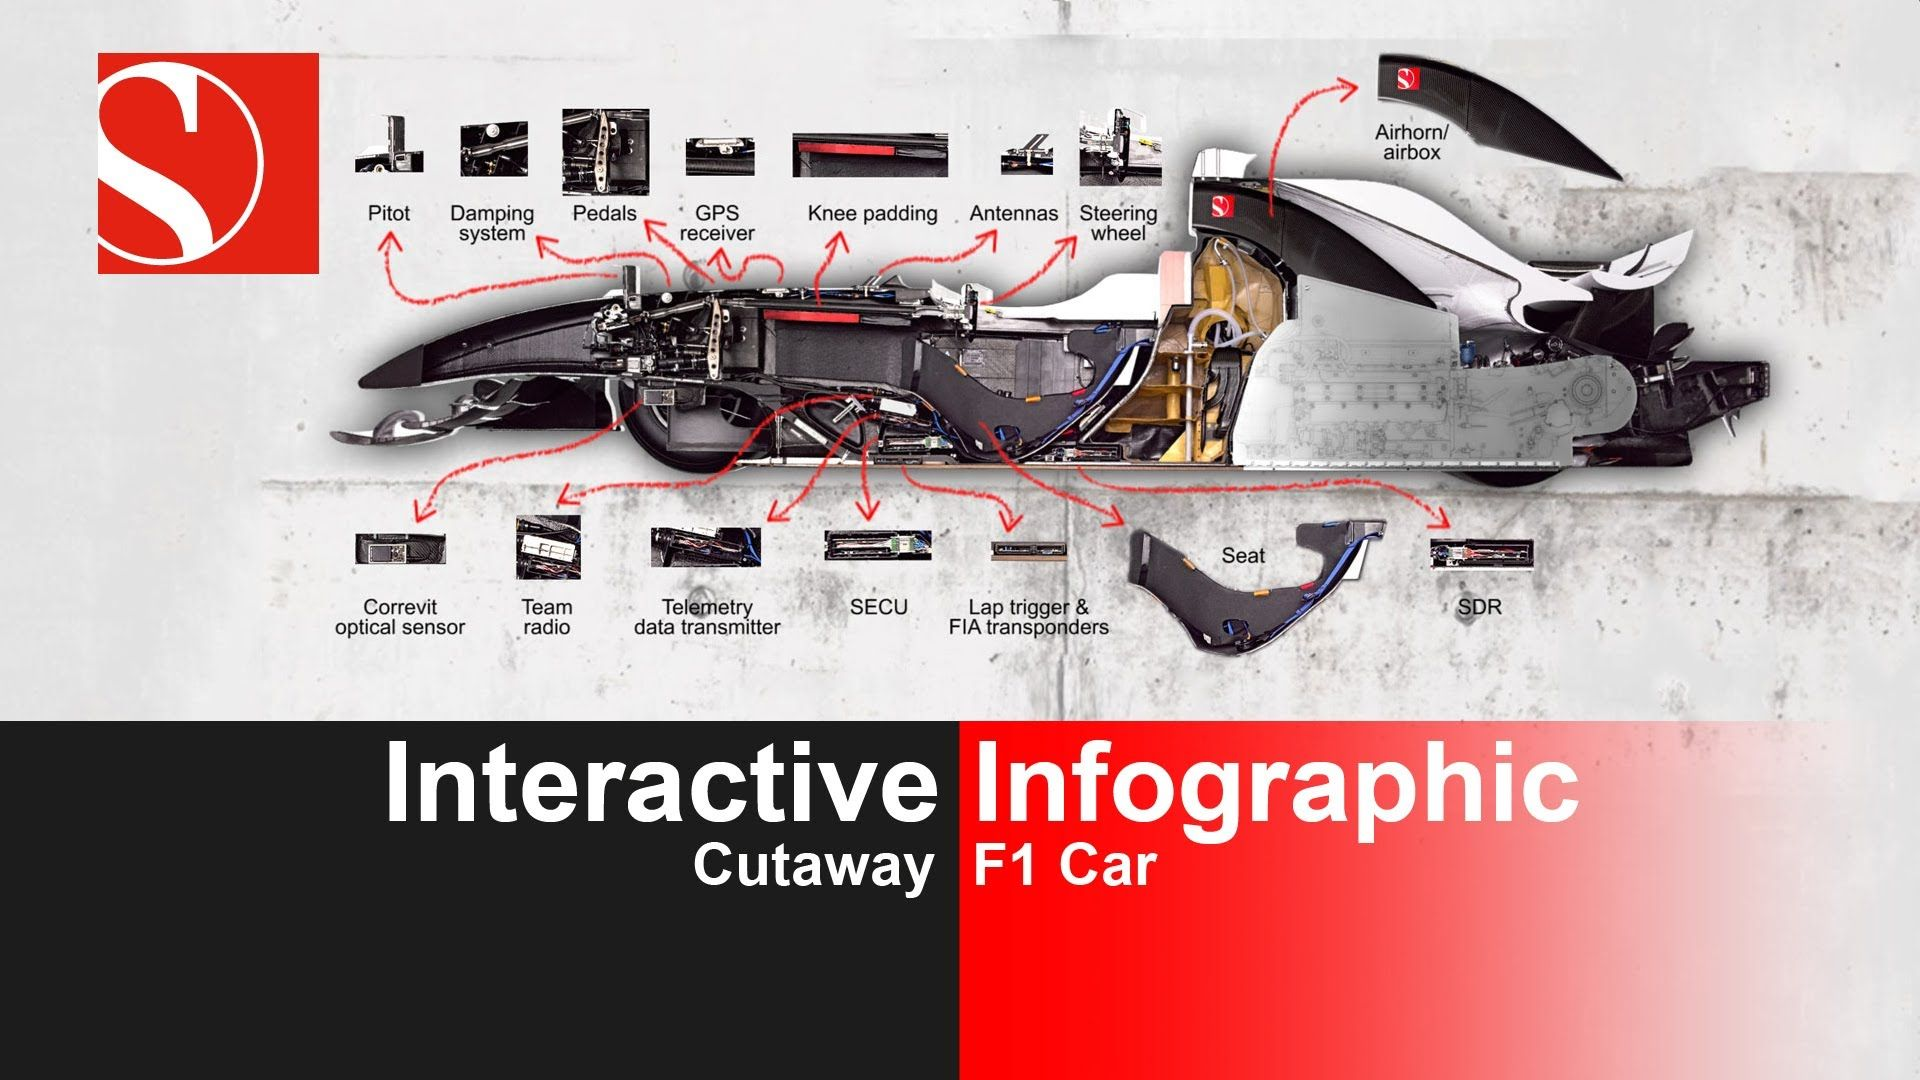 Formula 1, Race Cars, F1, Infographics, Cutaway, Social Networks, Rockets,  Anatomy, Fire Crackers